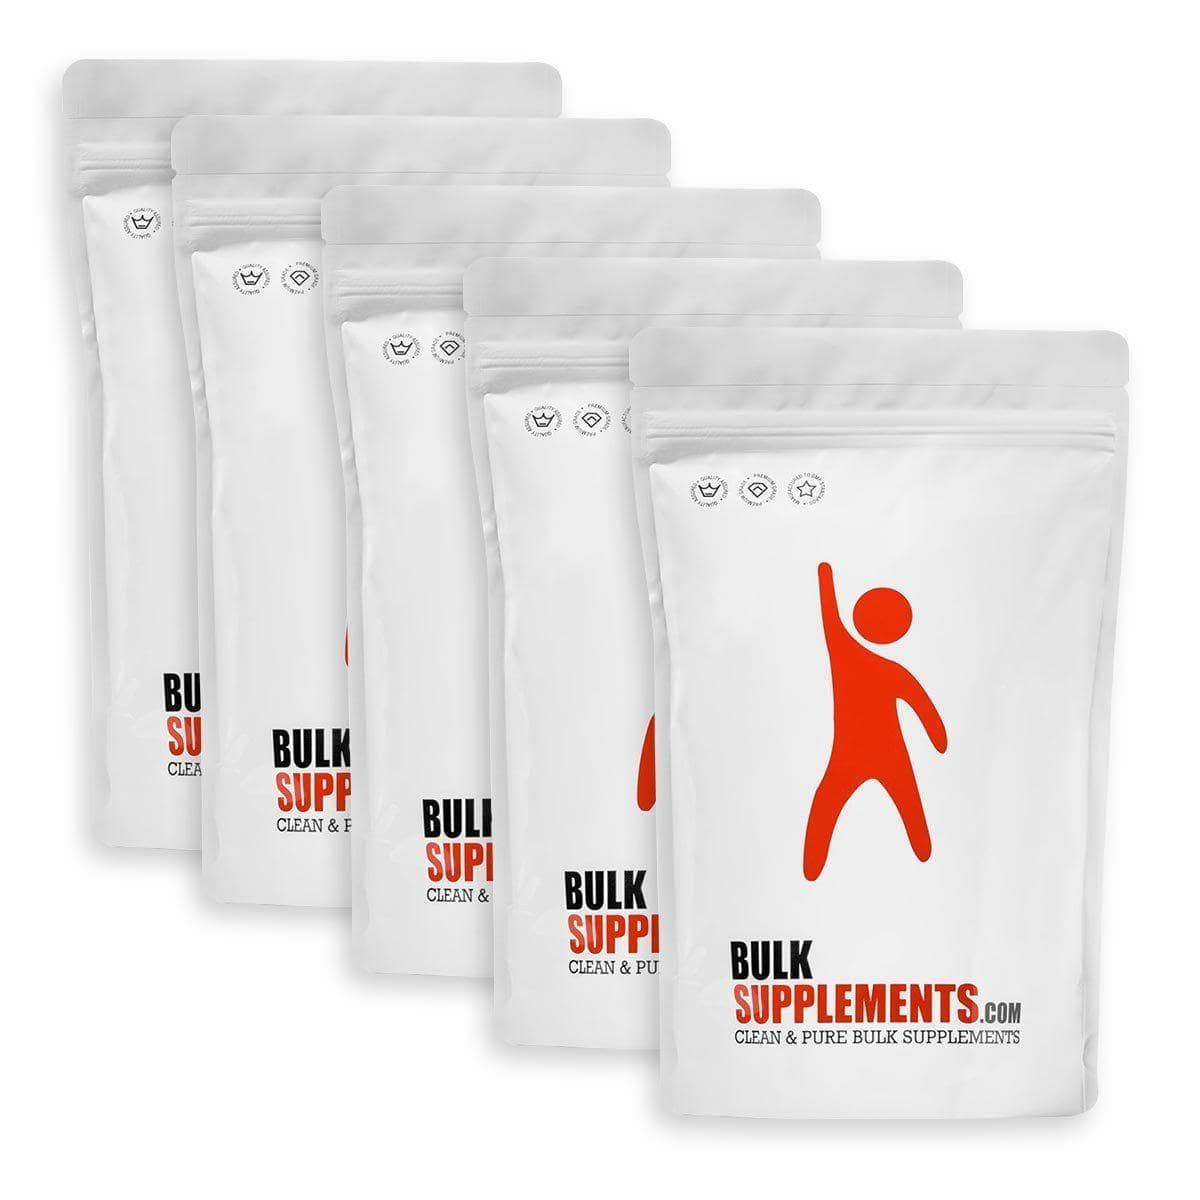 Bulk Supplements Protein Sale: 5kg Isolate for $65, 5 kg Concentrate for $45